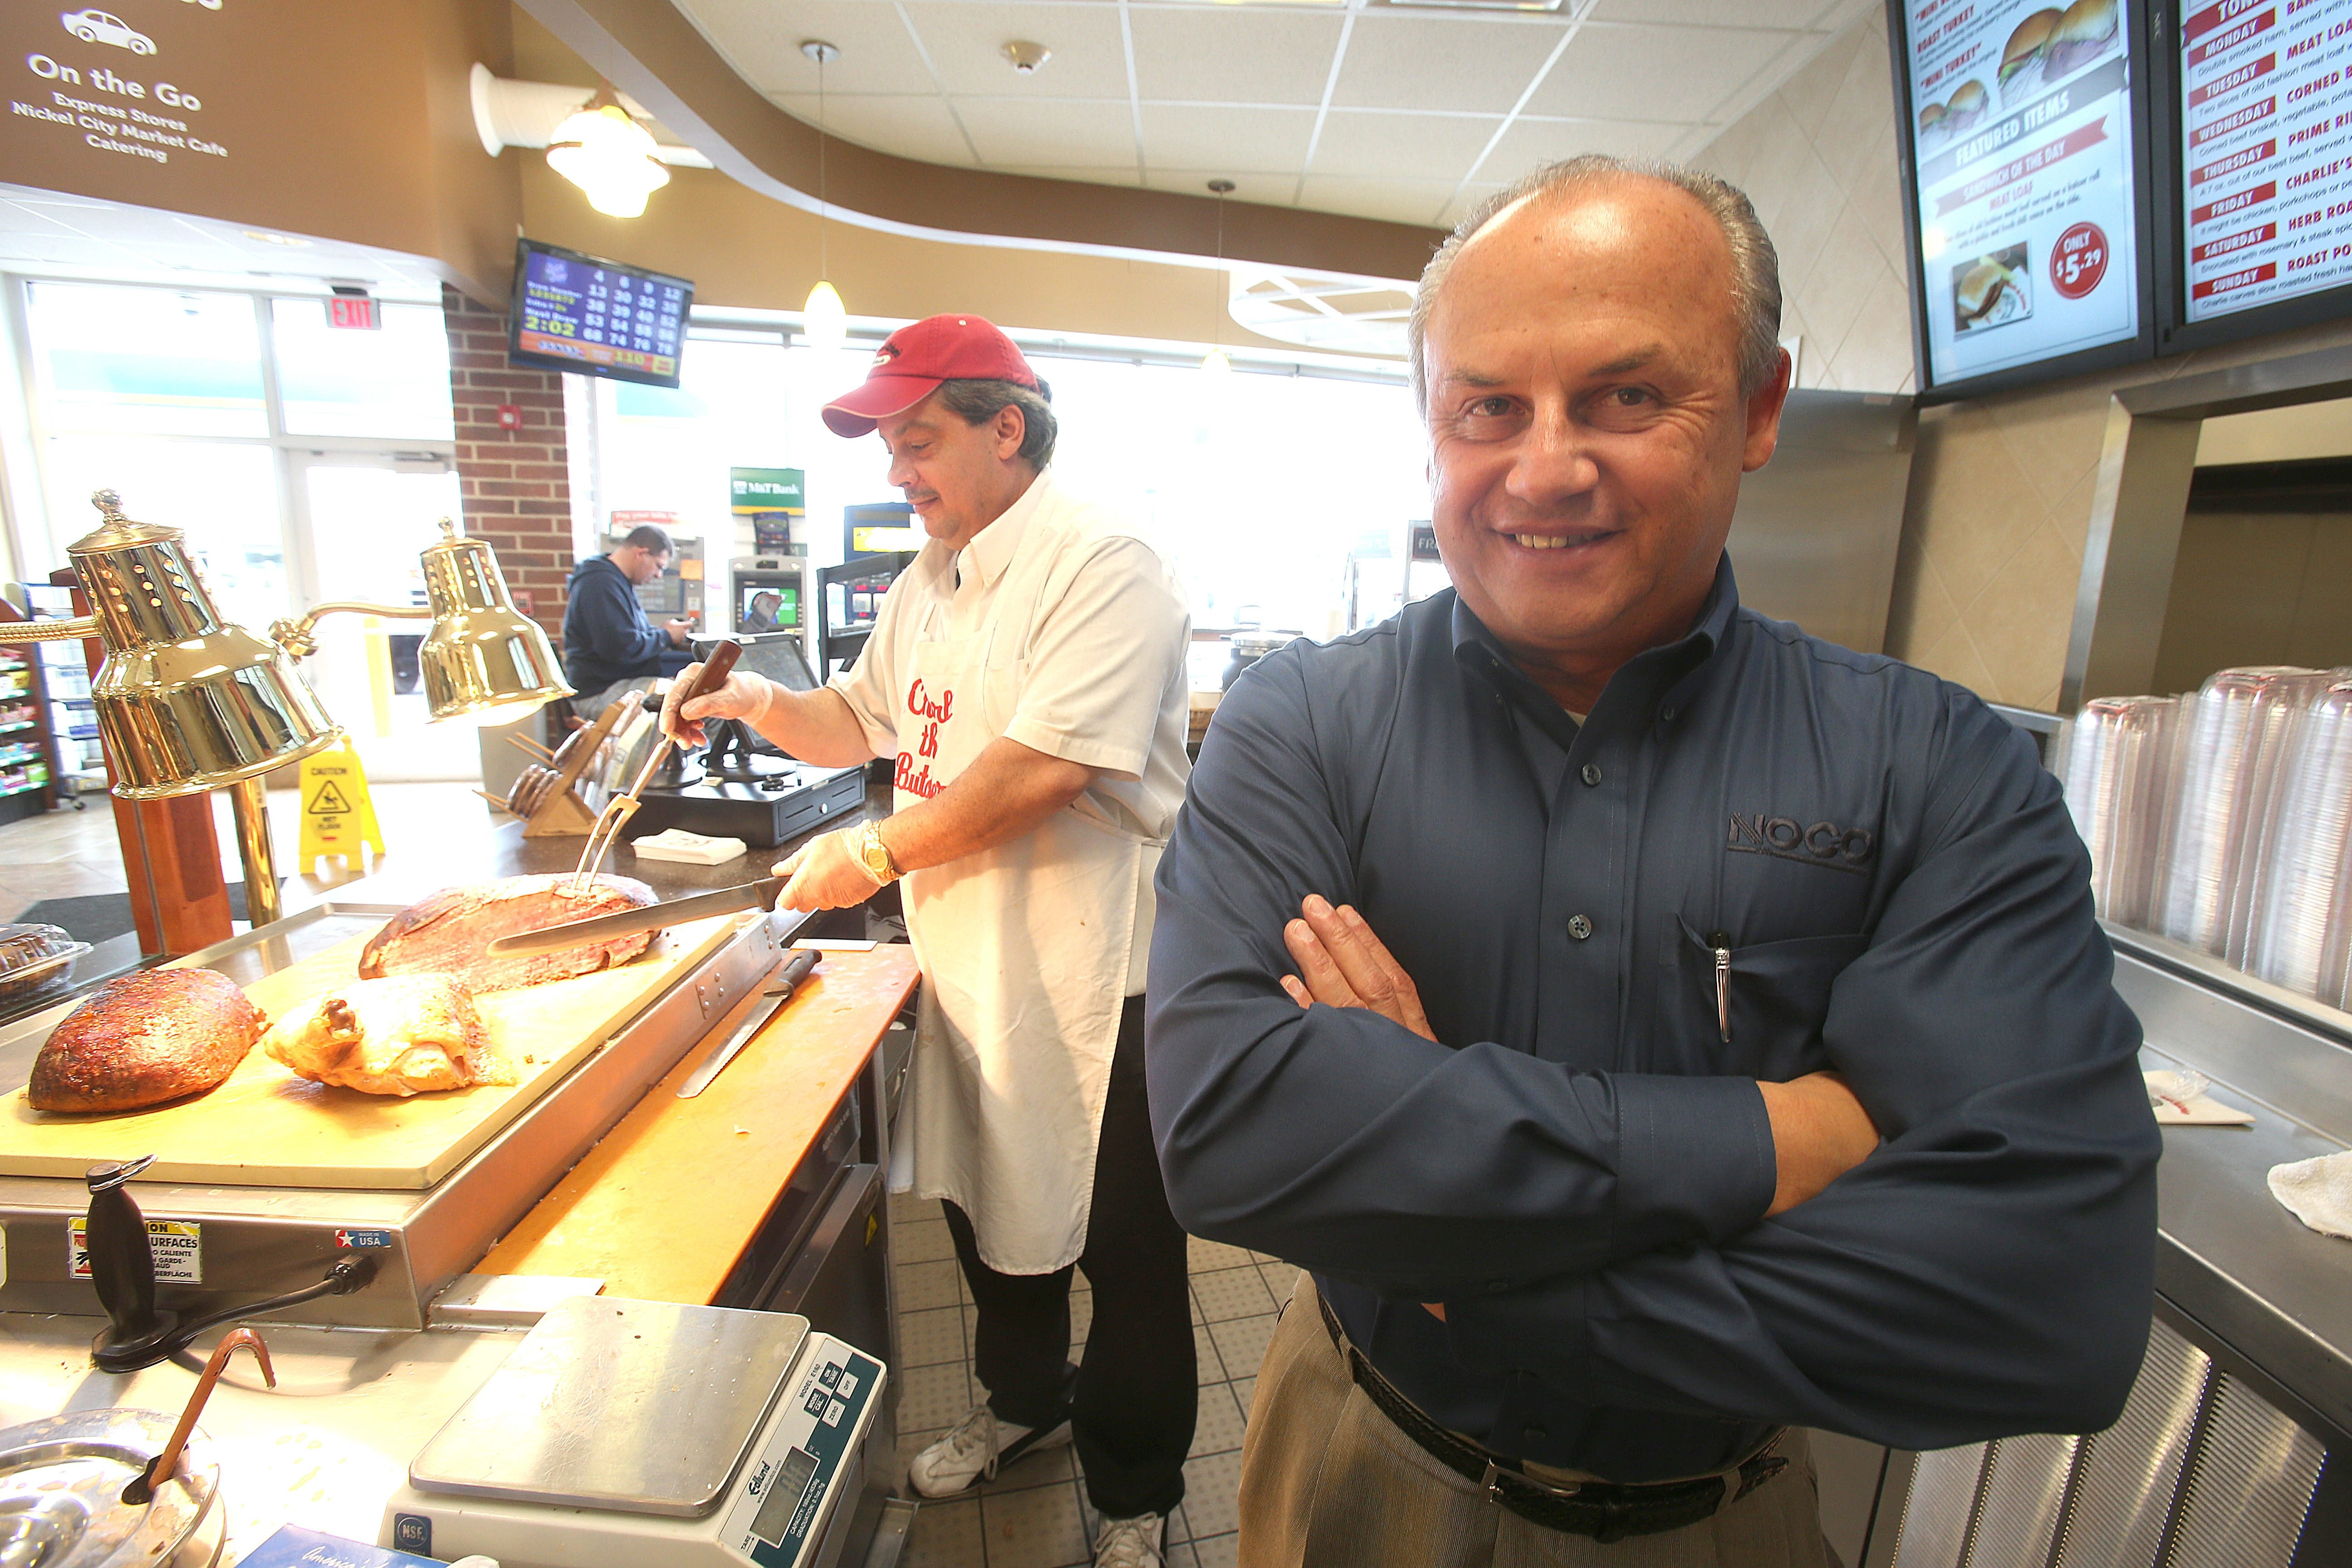 Noco executive Paul Wydro, right, with Charlie the Butcher carver Edgardo Fontanez at the store at Genesee Street and Holtz Drive in Cheektowaga.